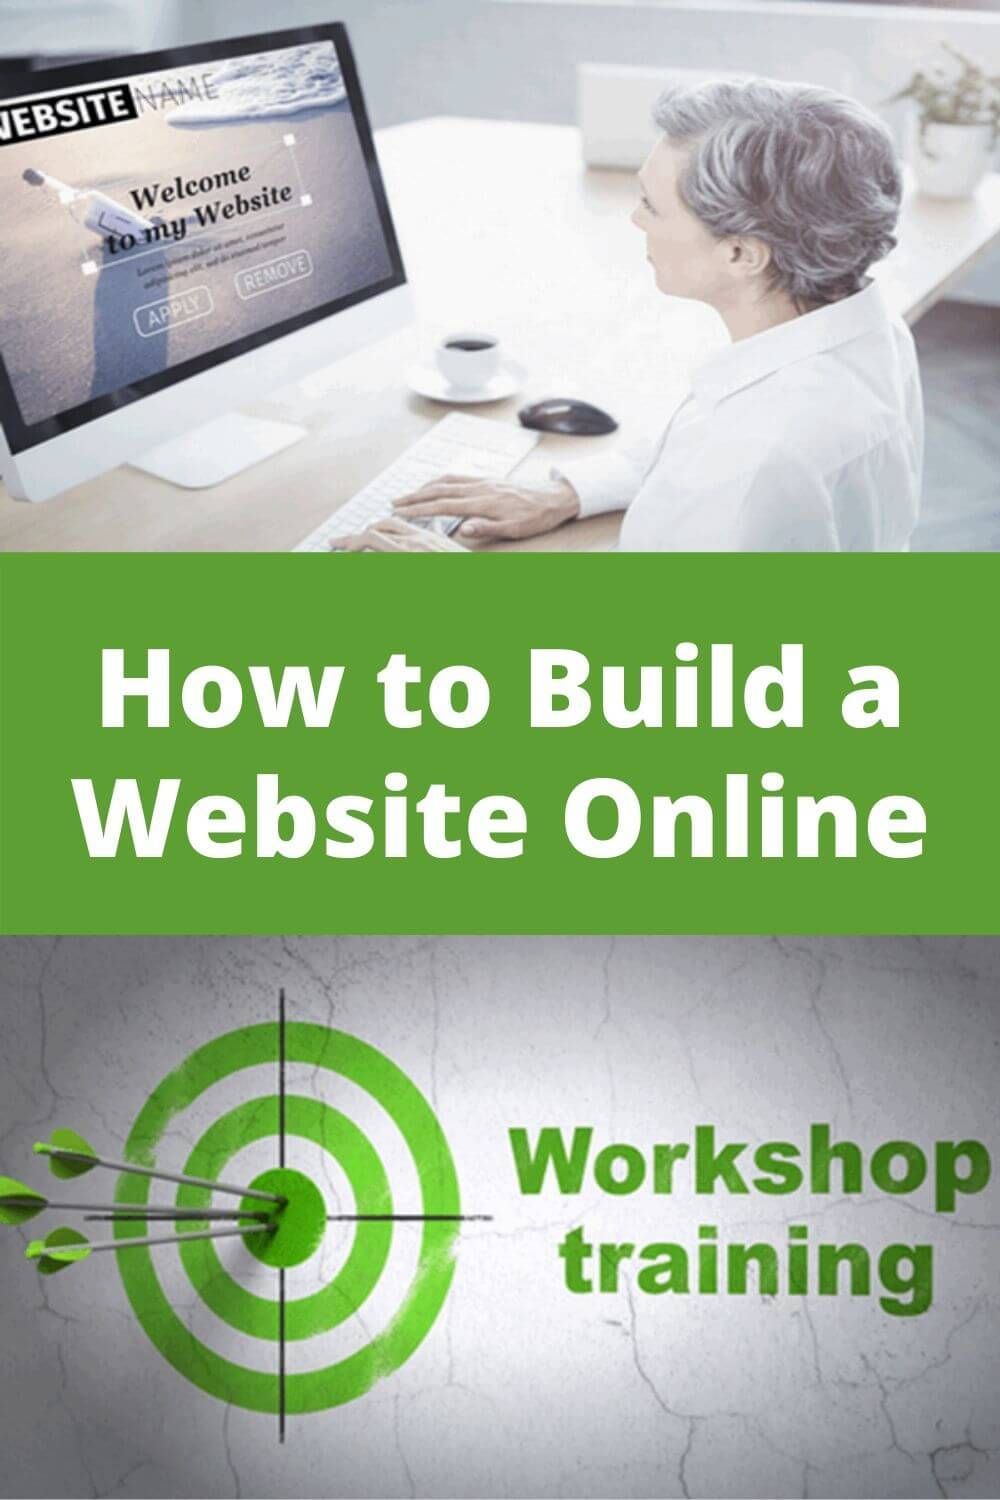 How to build a website online